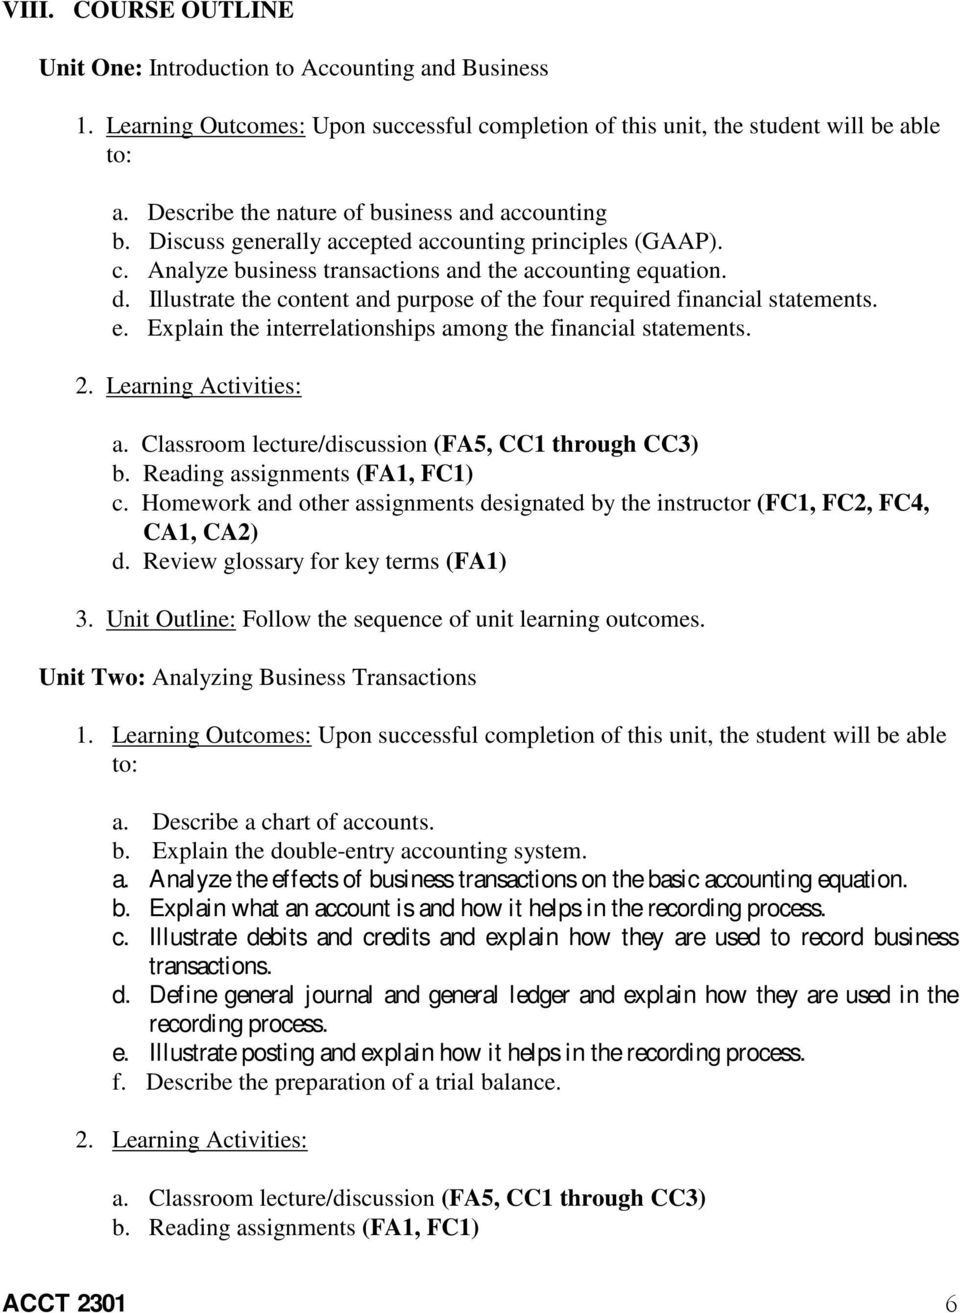 Unit Two: Analyzing Business Transactions a. Describe a chart of accounts. b. Explain the double-entry accounting system. a. Analyze the effects of business transactions on the basic accounting equation.